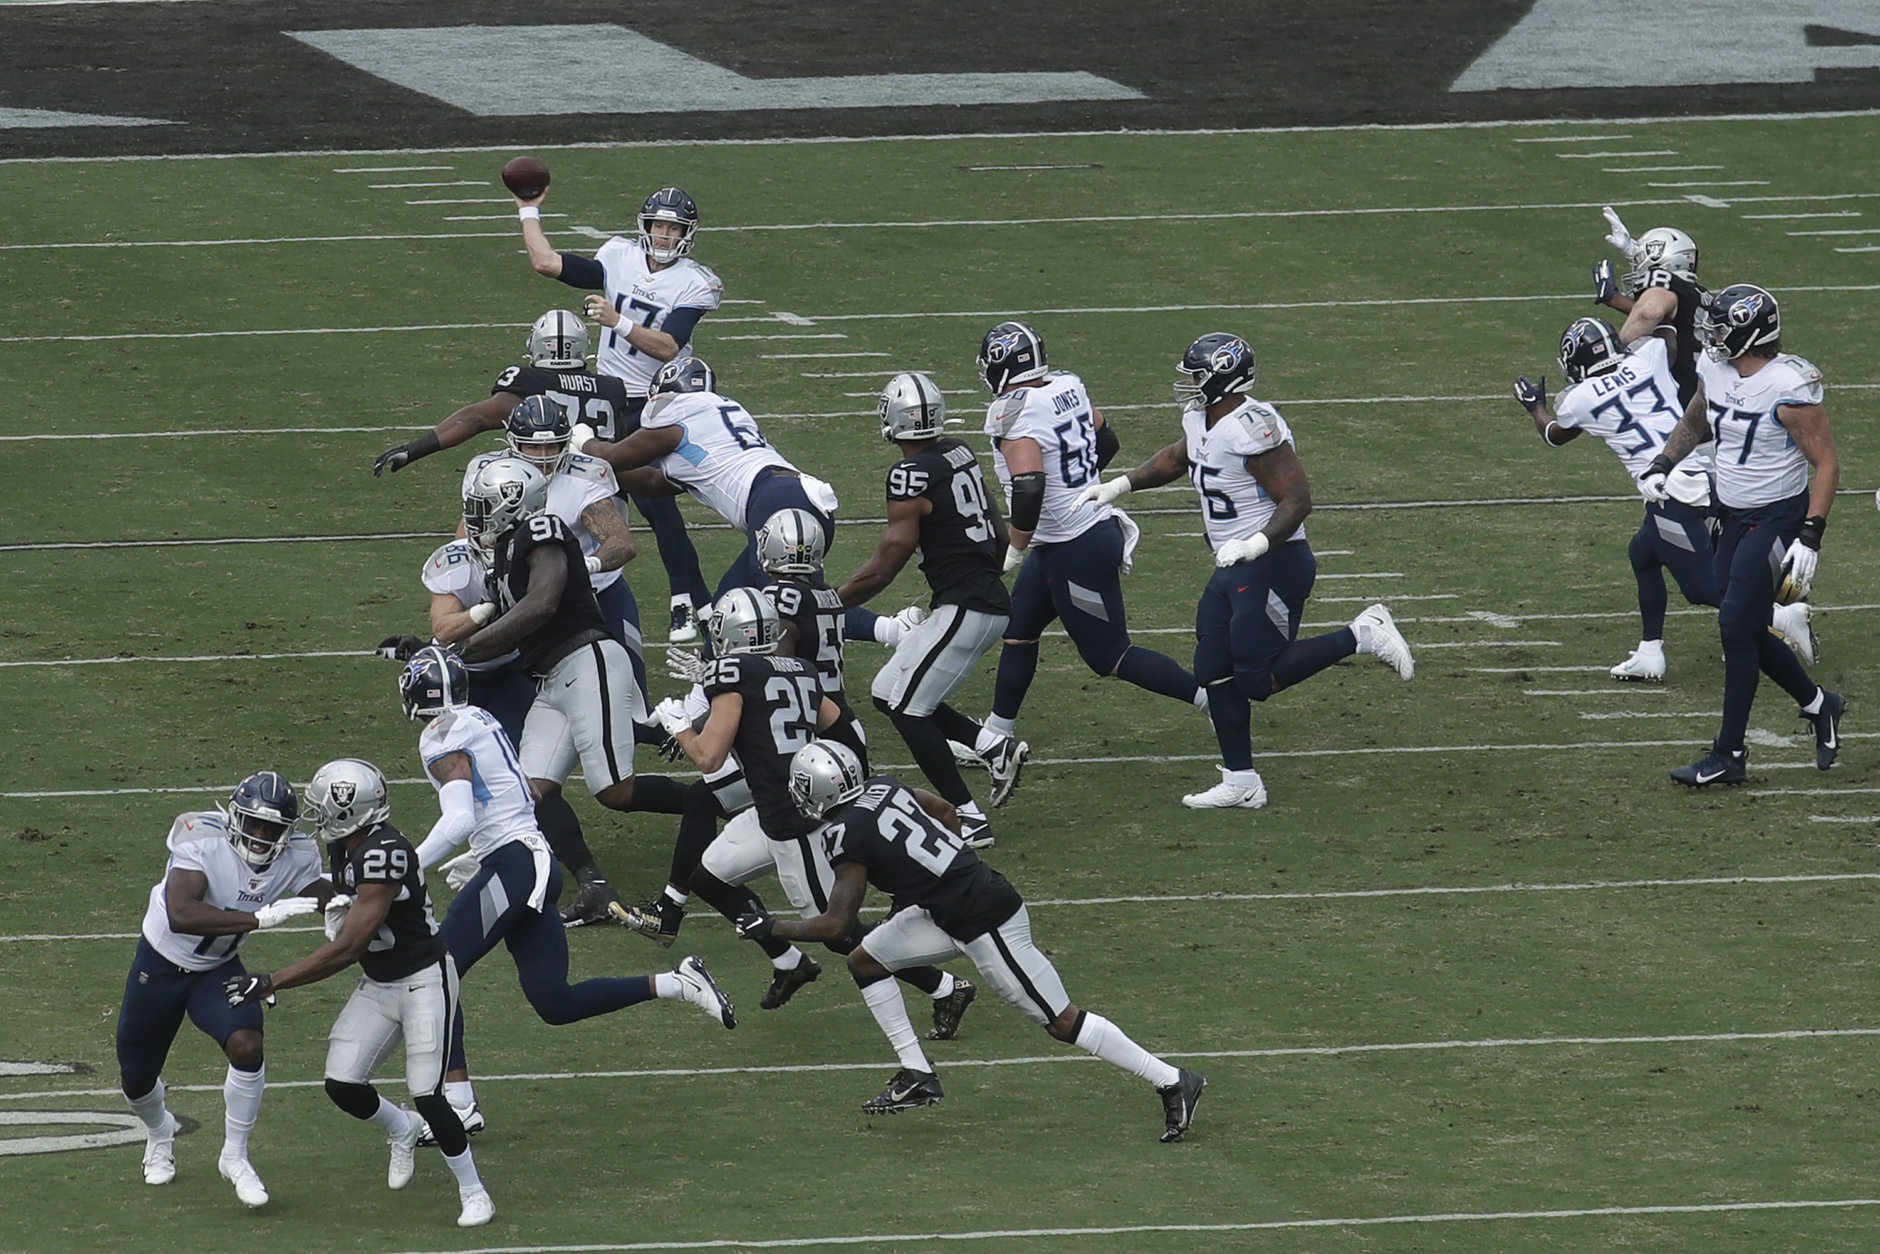 """<p><b><i>Titans 42</i></b><br /> <b><i>Raiders 21</i></b></p> <p>In one of the most unpredictable turns of the season, <a href=""""https://twitter.com/ESPNStatsInfo/status/1203856638031081472?s=20"""" target=""""_blank"""" rel=""""noopener"""">Ryan Tannehill continued his tear</a> to lead the Titans to their first 500-yard game since the move to Tennessee and into a tie with Houston atop the AFC South. The two teams play twice in the final three weeks, so barring another upset Texans loss (they play in Tampa Bay in Week 16), Tennessee may still have to pull off a sweep to win the division.</p>"""